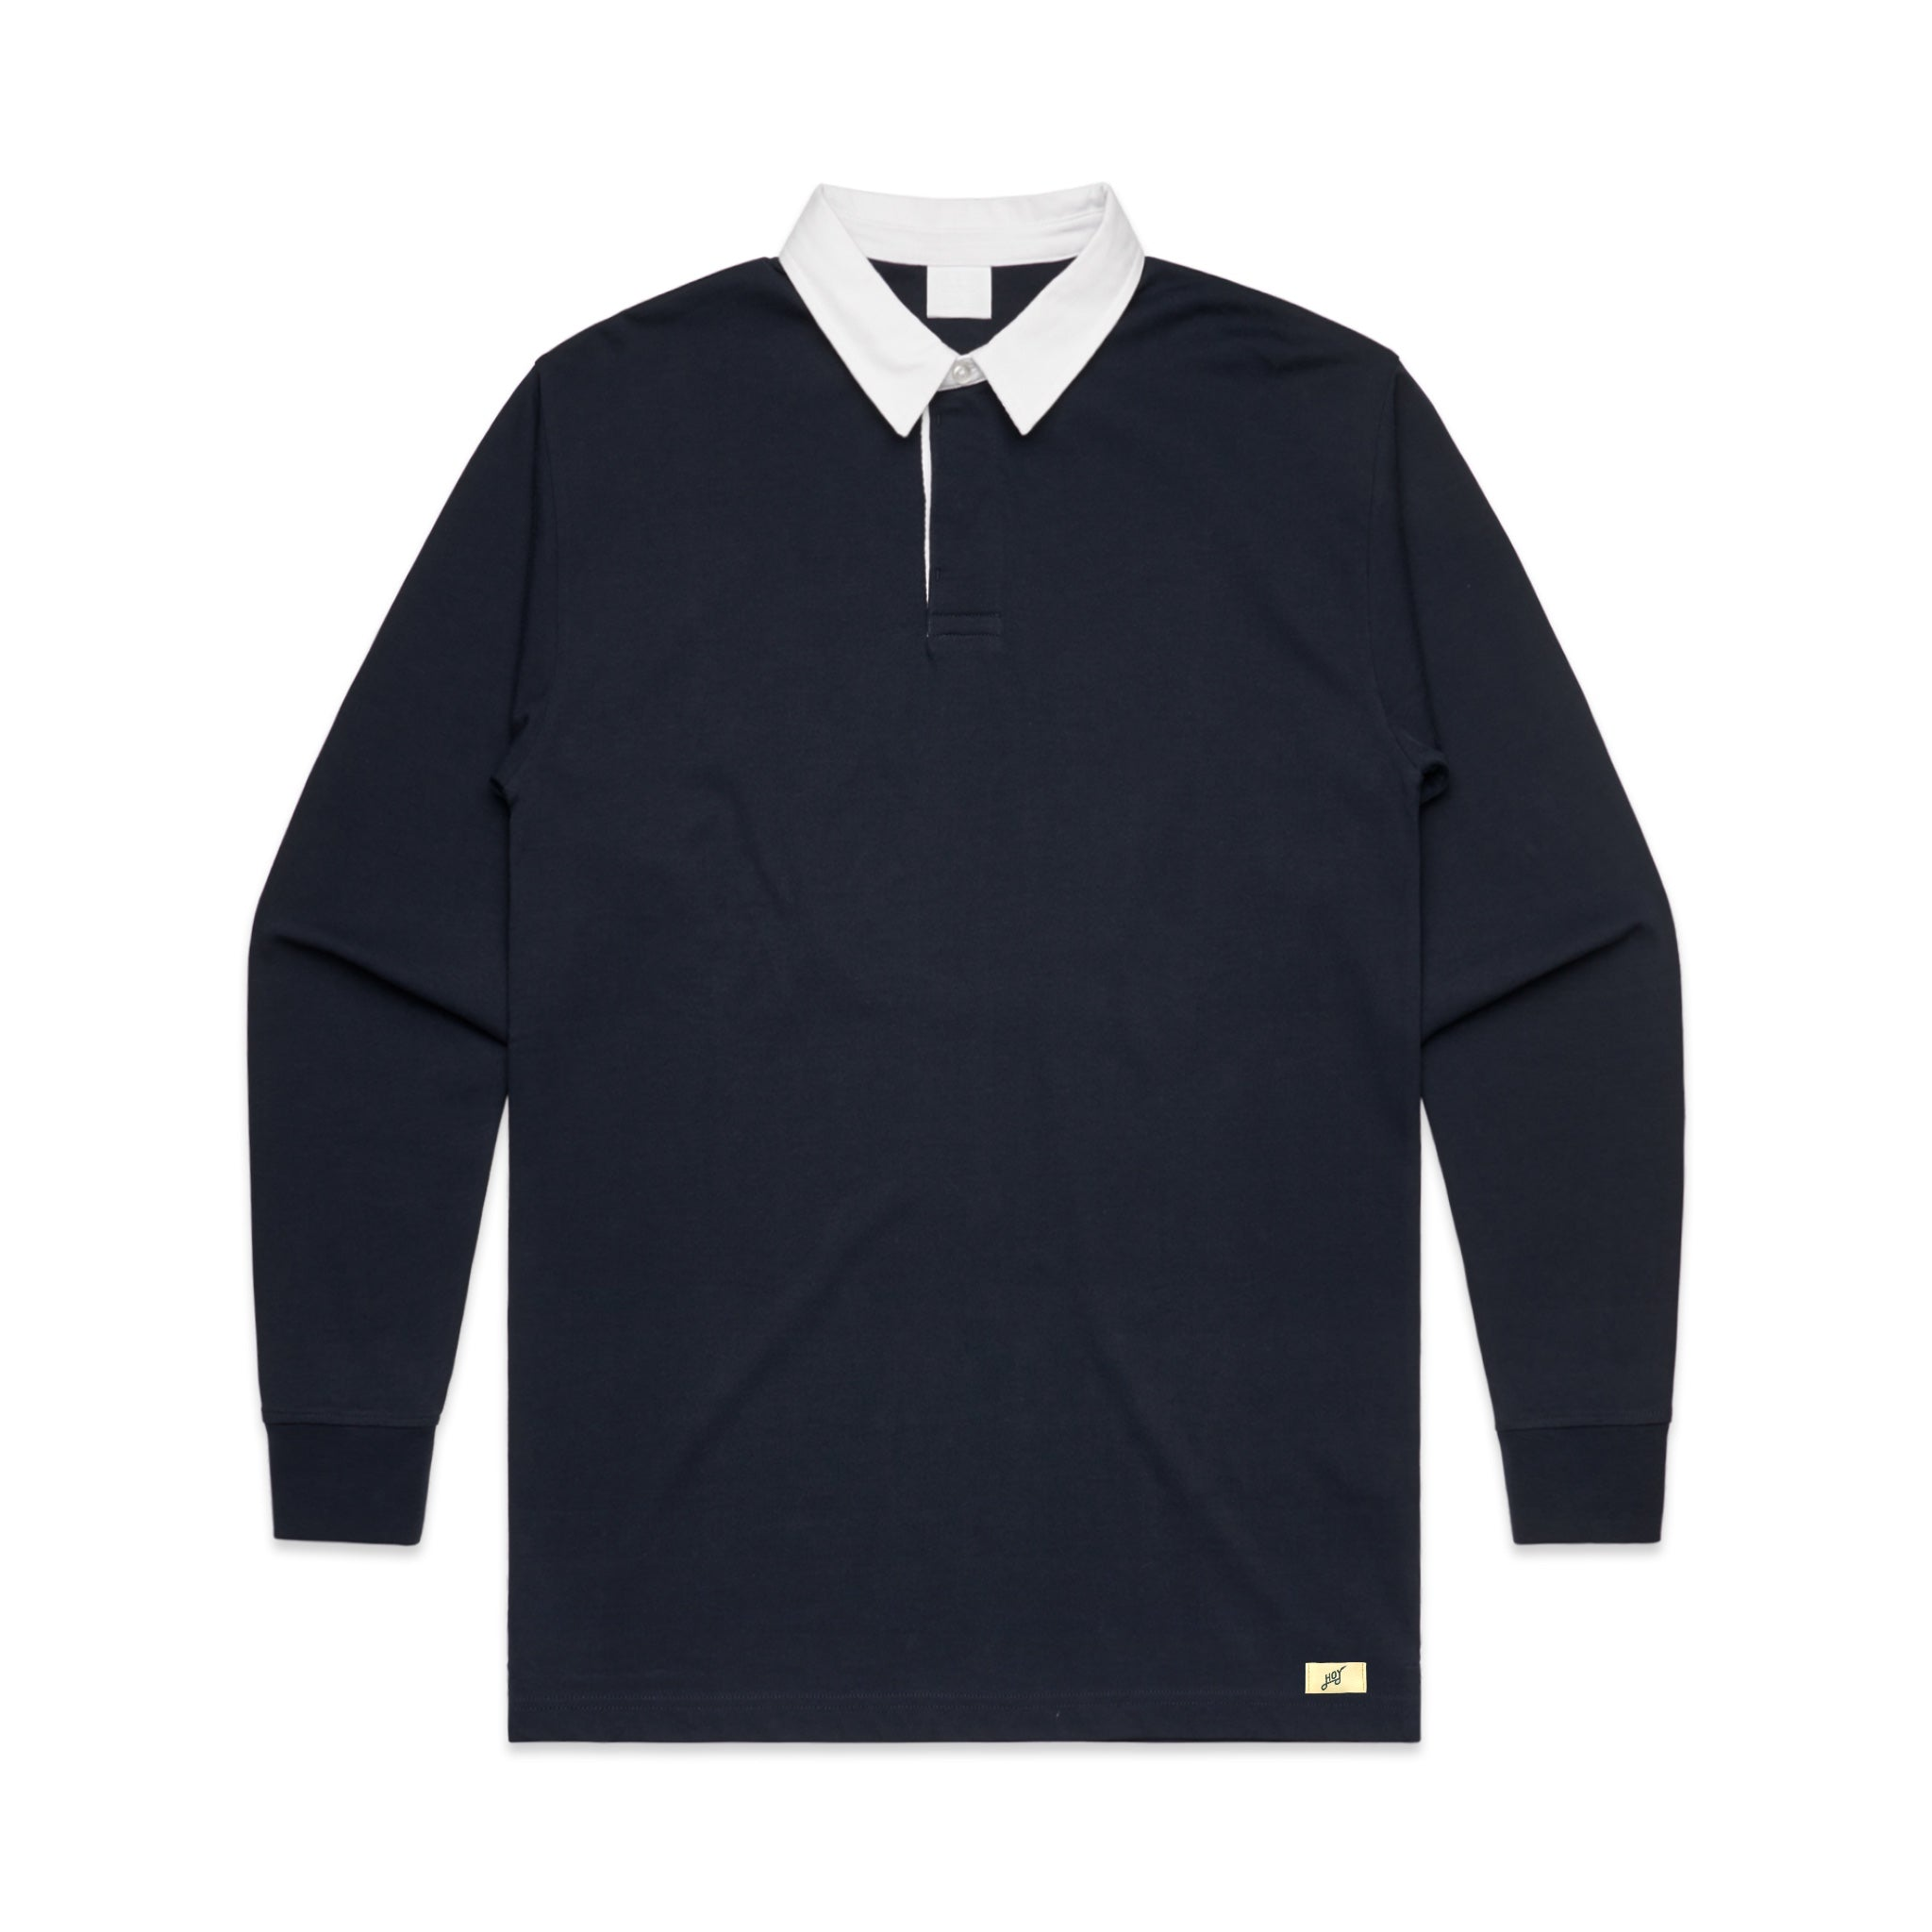 Hoy Explore Rugby Top - Navy Dusk